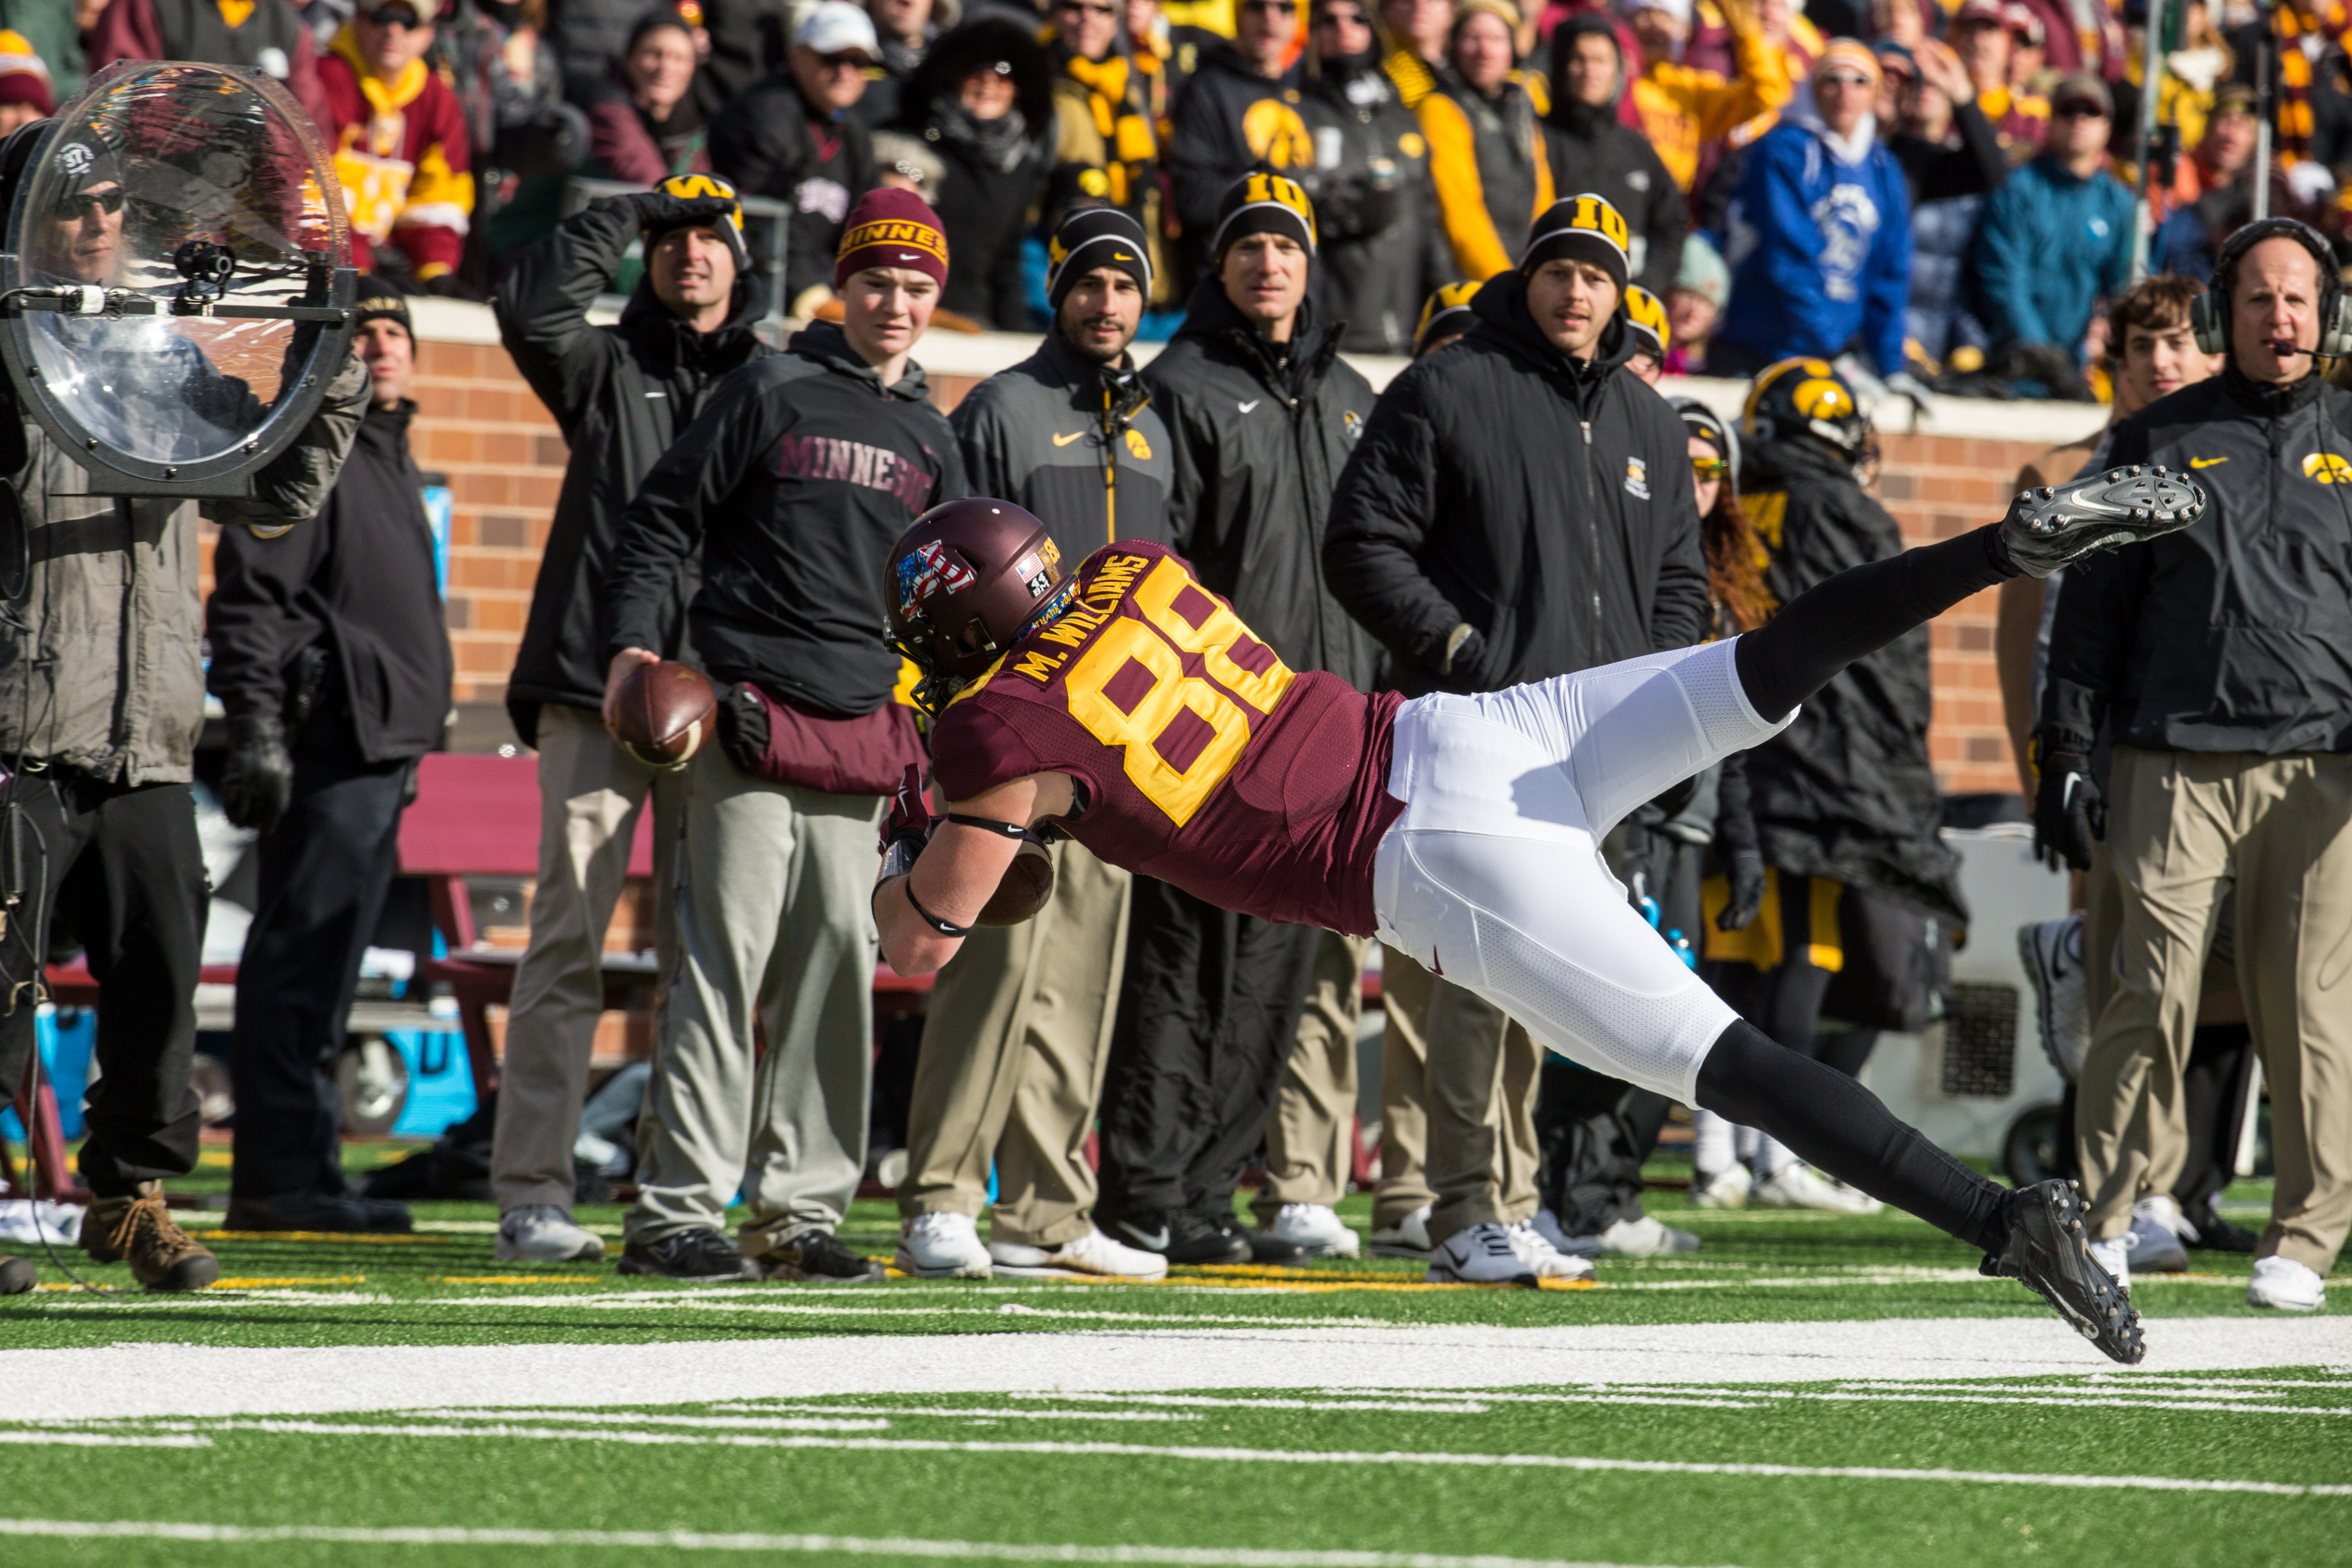 """Casey O'Brien (wearing Minnesota gear on the Iowa sideline) during Maxx Williams famous """"rubber wake"""" catch."""